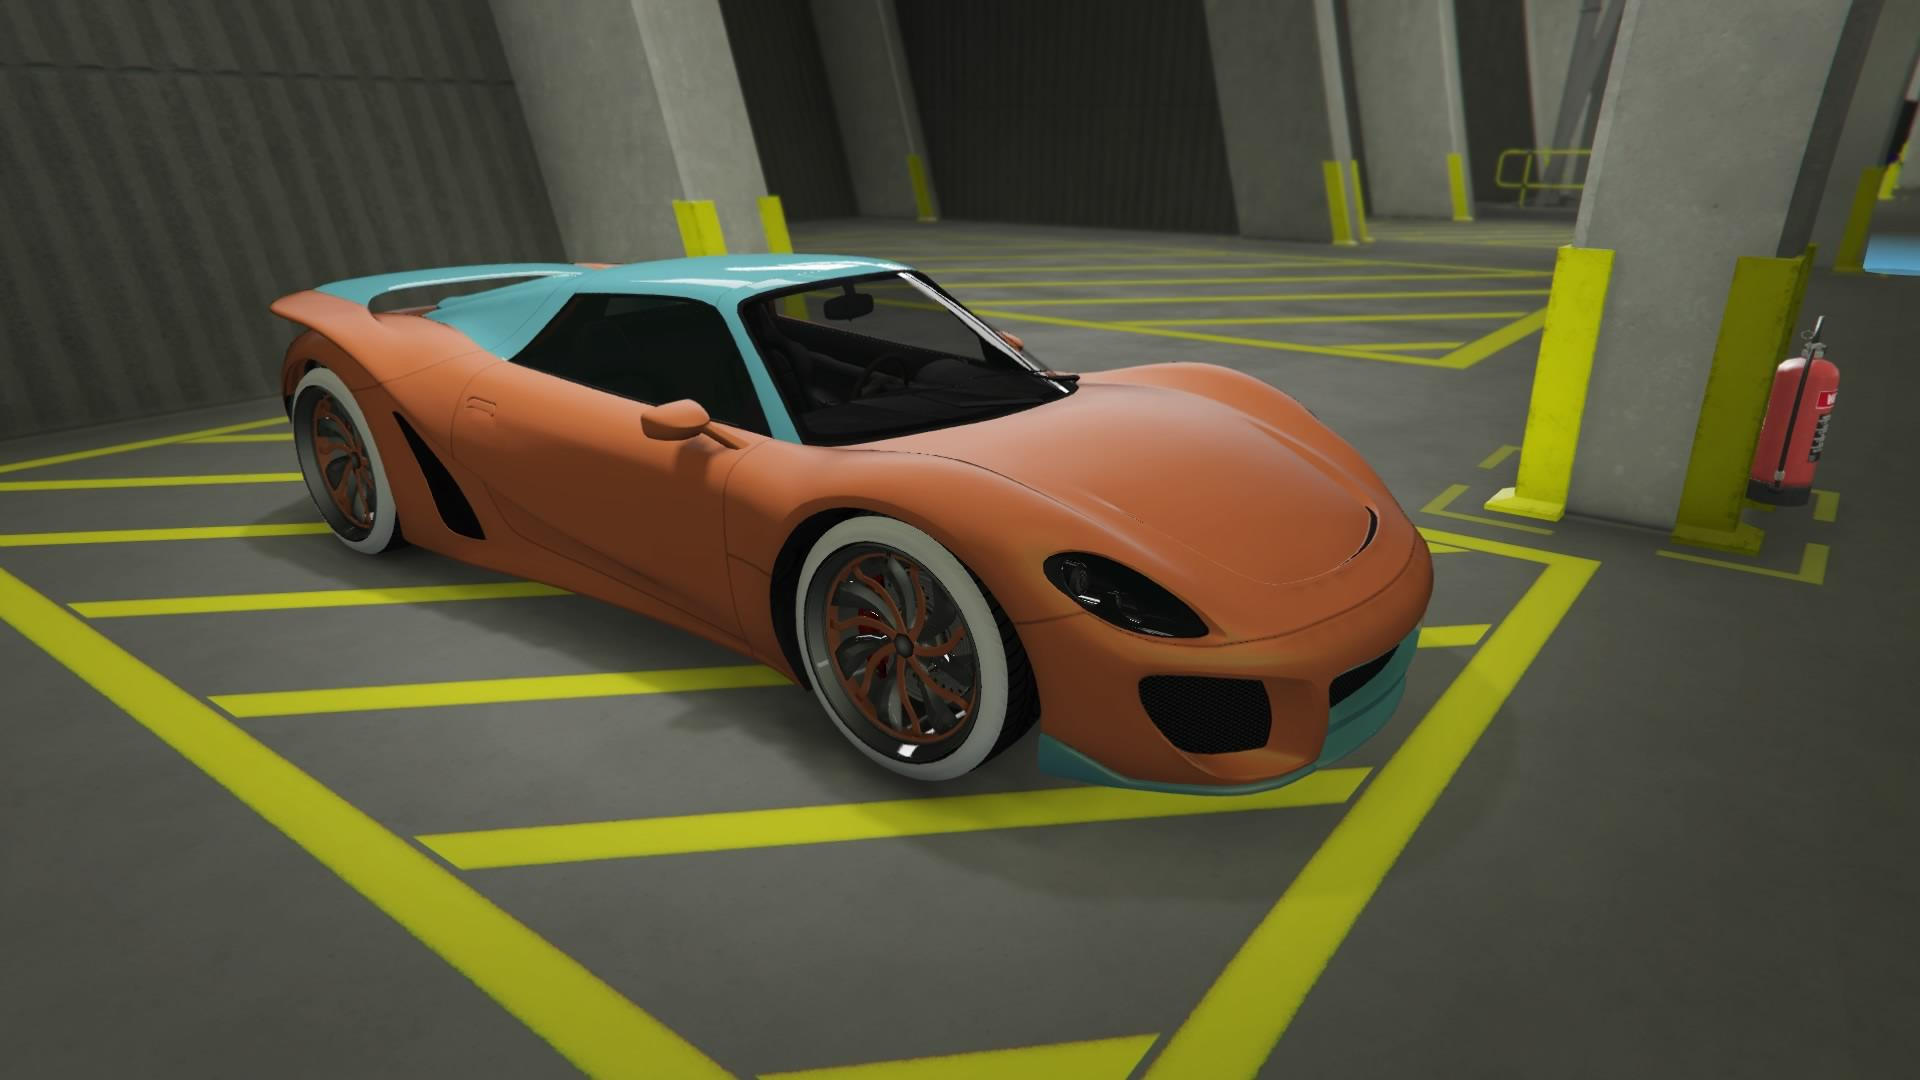 811 - Matte orange and green and orange rim color.